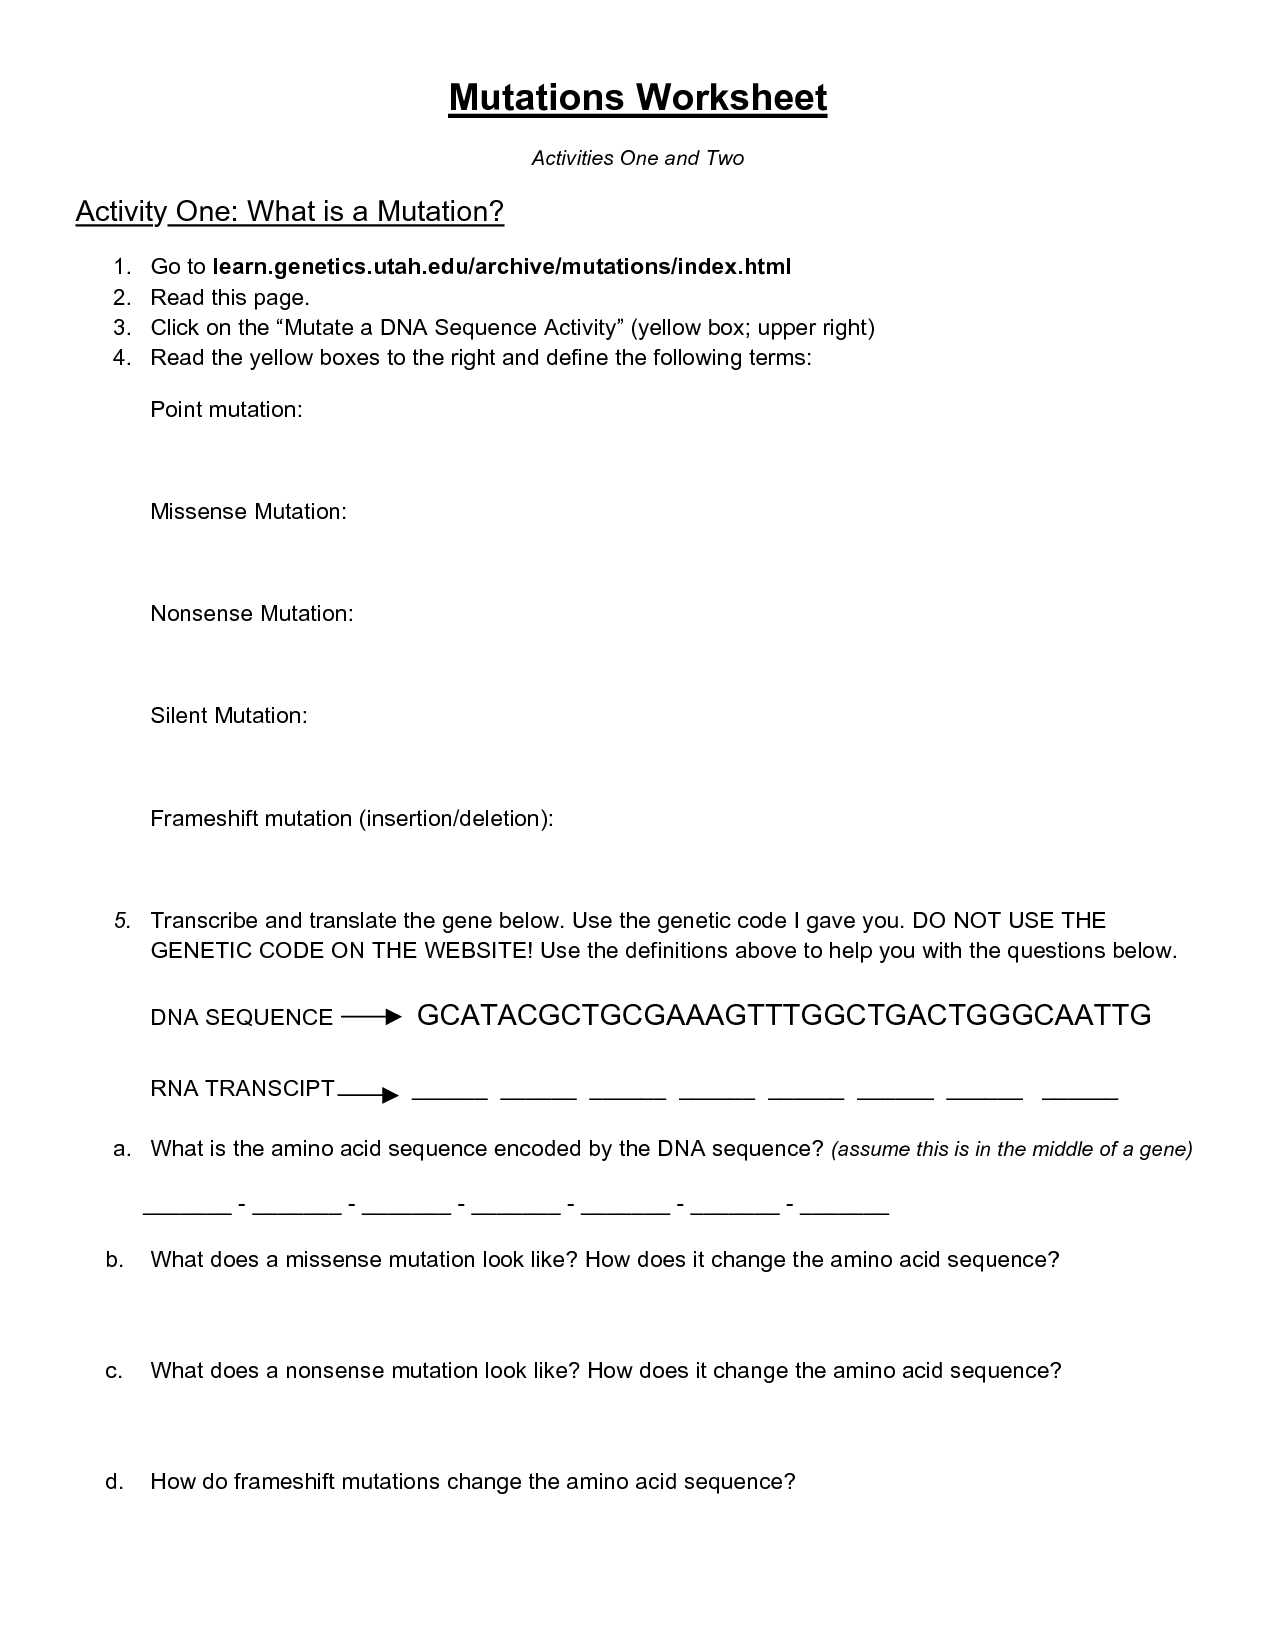 27 Genetic Mutations Worksheet Answer Key